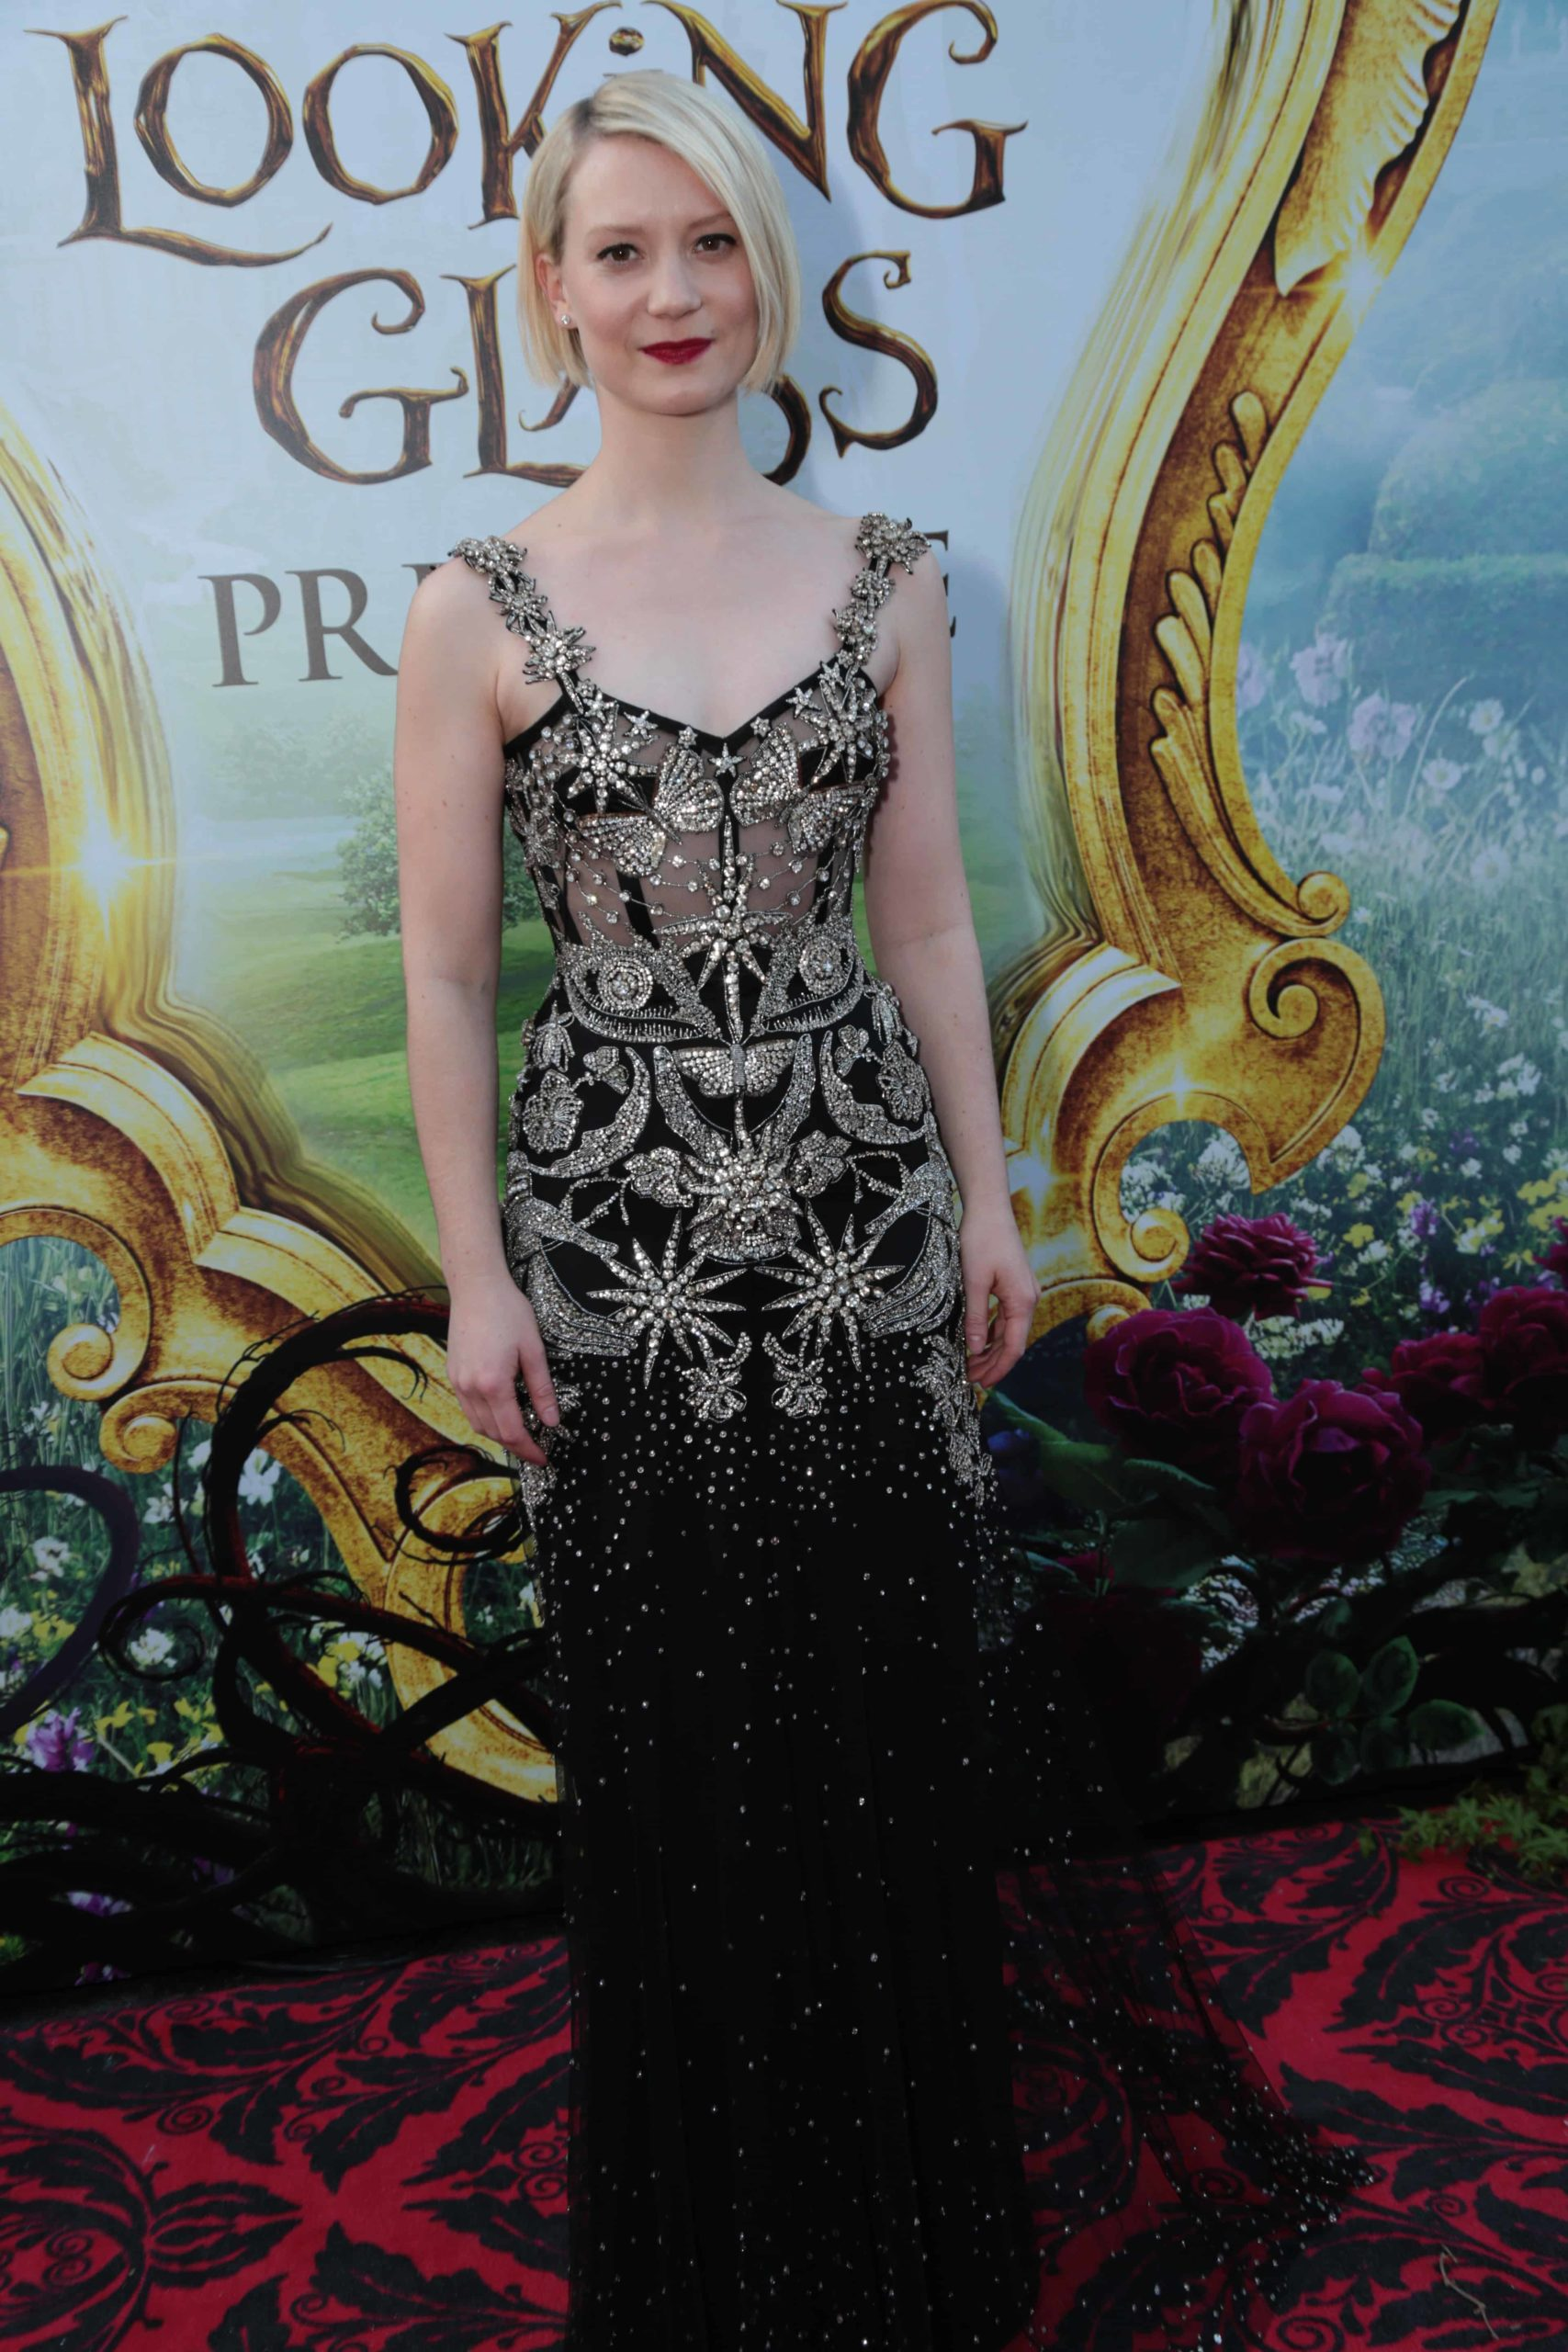 """Mia Wasikowska arrives at The US Premiere of Disney's """"Alice Through the Looking Glass"""" at the El Capitan Theater in Los Angeles, CA on Monday, May 23, 2016. (Photo: Alex J. Berliner/ABImages)"""